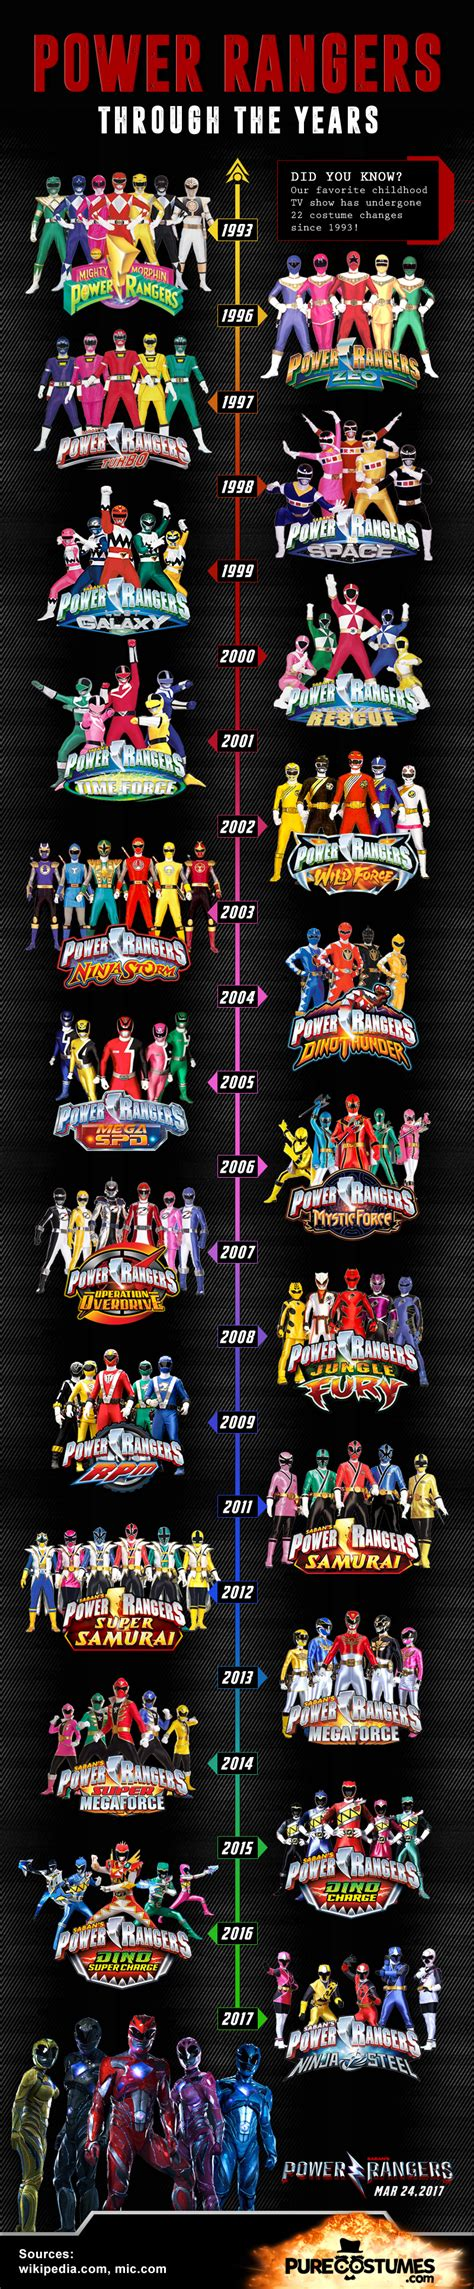 through the years infographic power rangers through the years